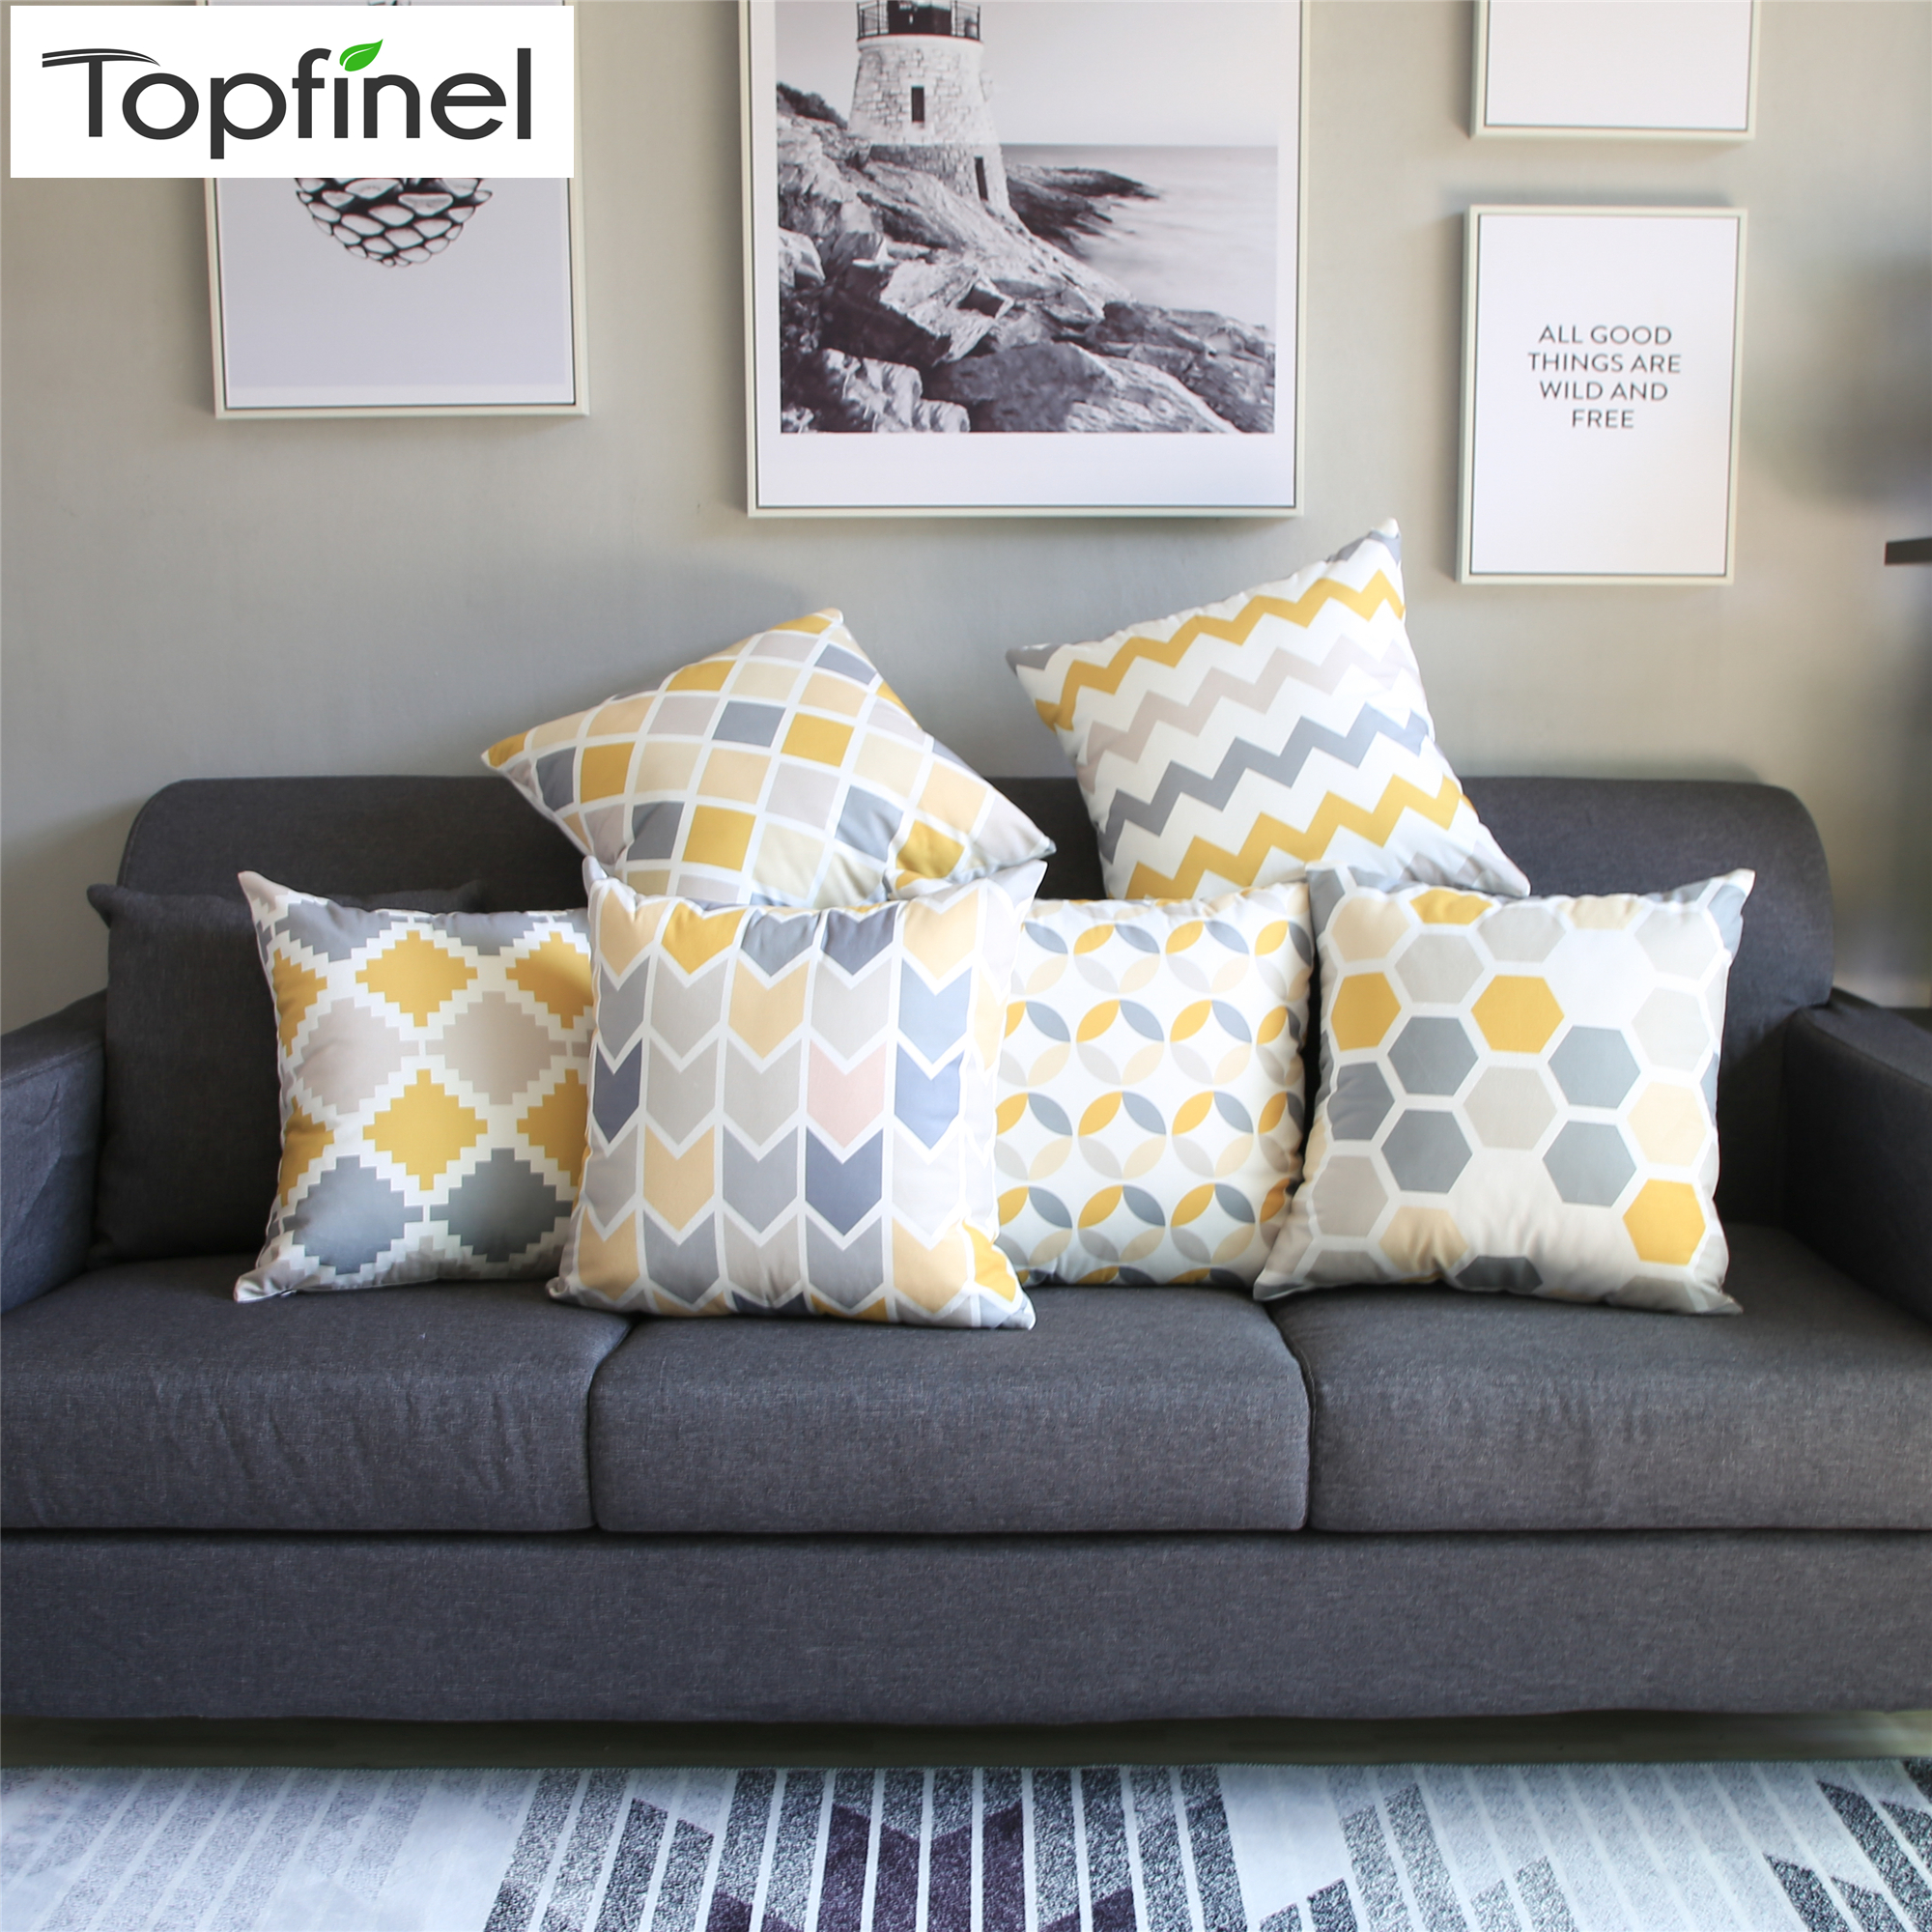 Topfinel Geometric Nordic Cushion Cover